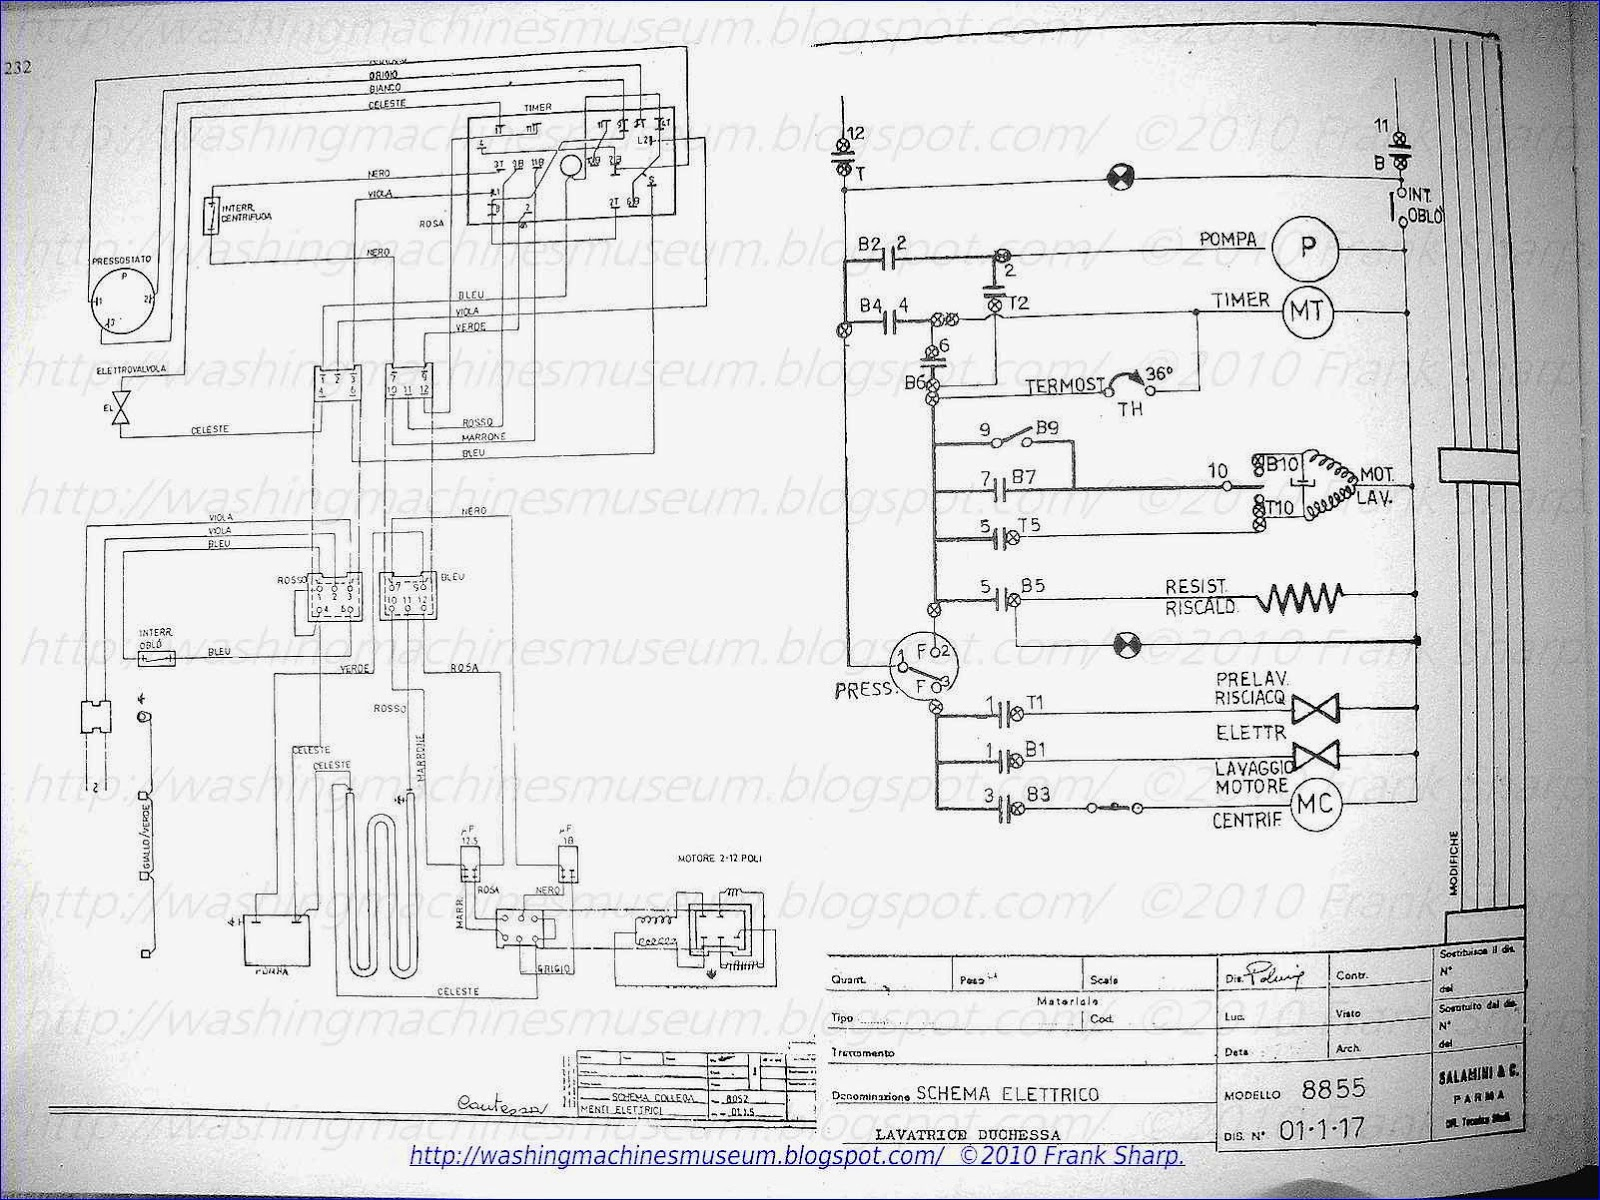 whirlpool dryer wiring diagram for plug volvo xc90 inglis get free image about